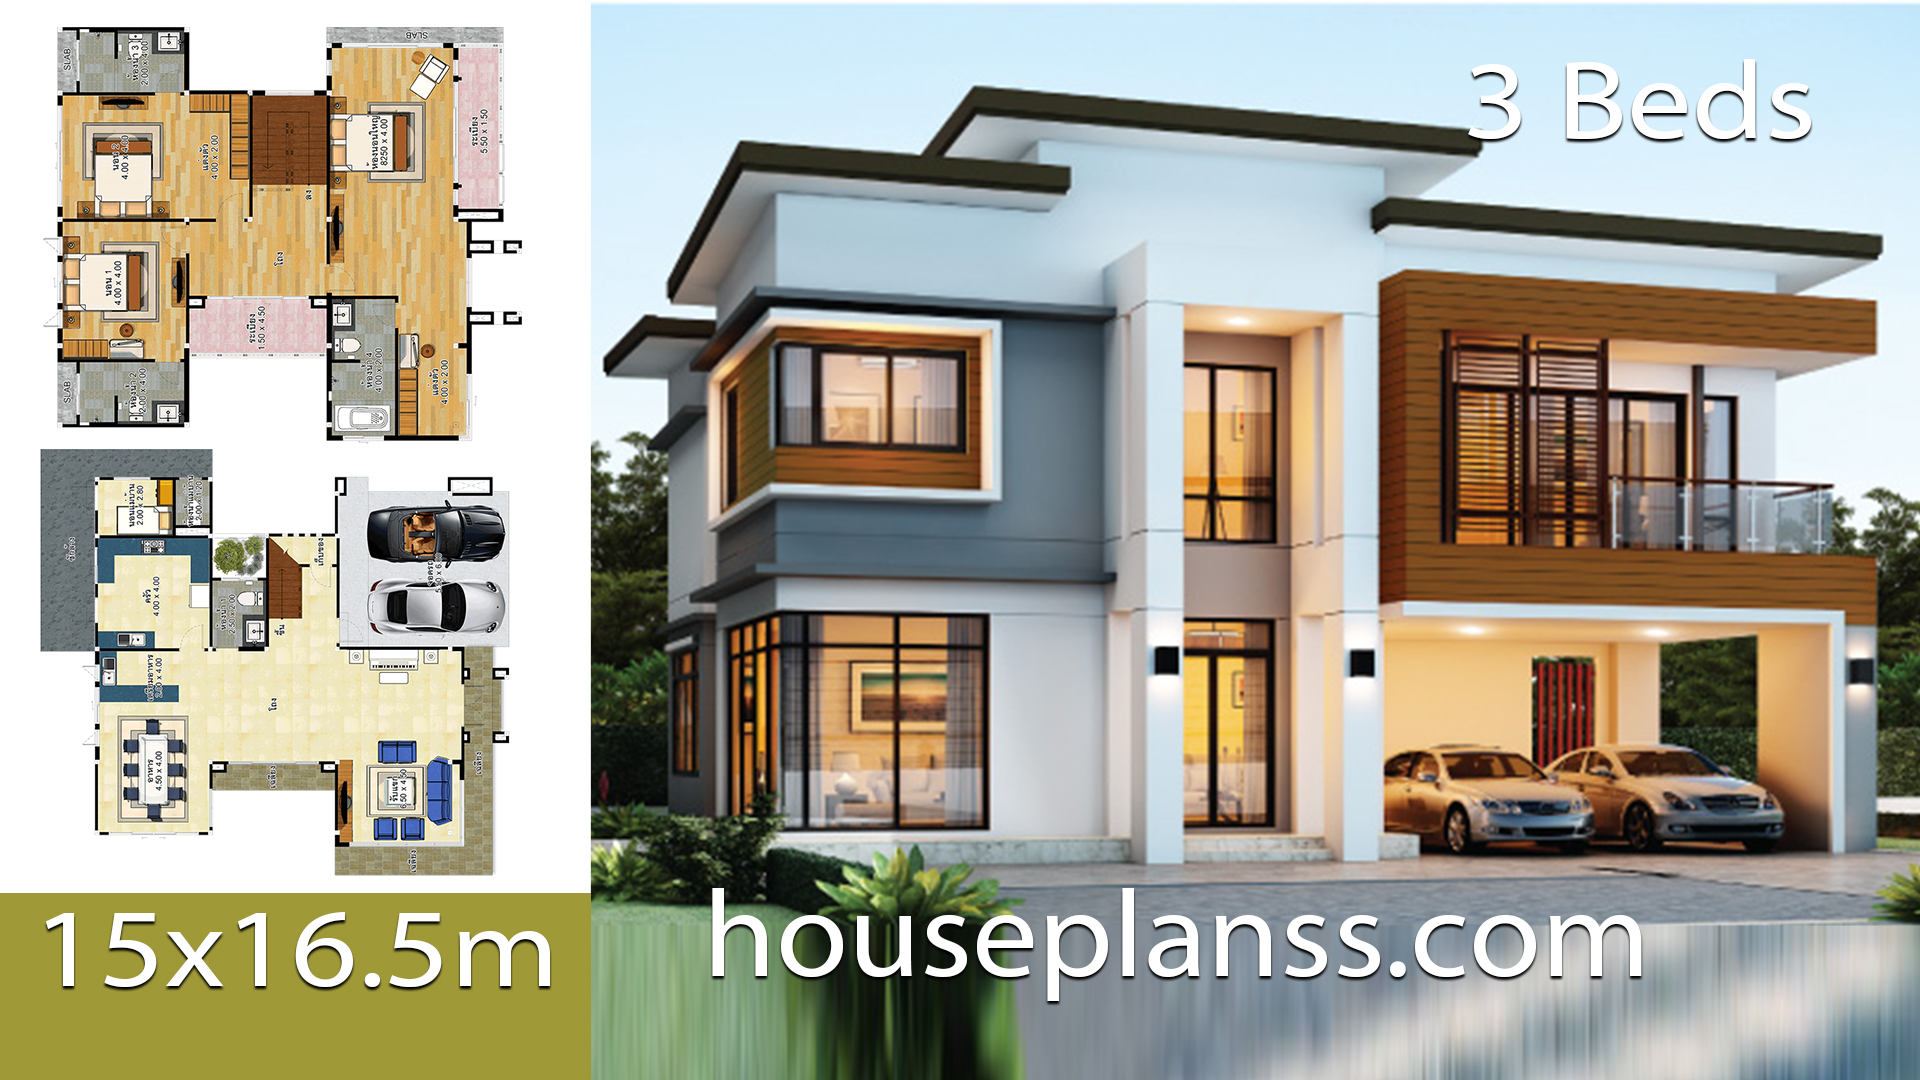 House design idea 15×16.5 with 3 bedrooms